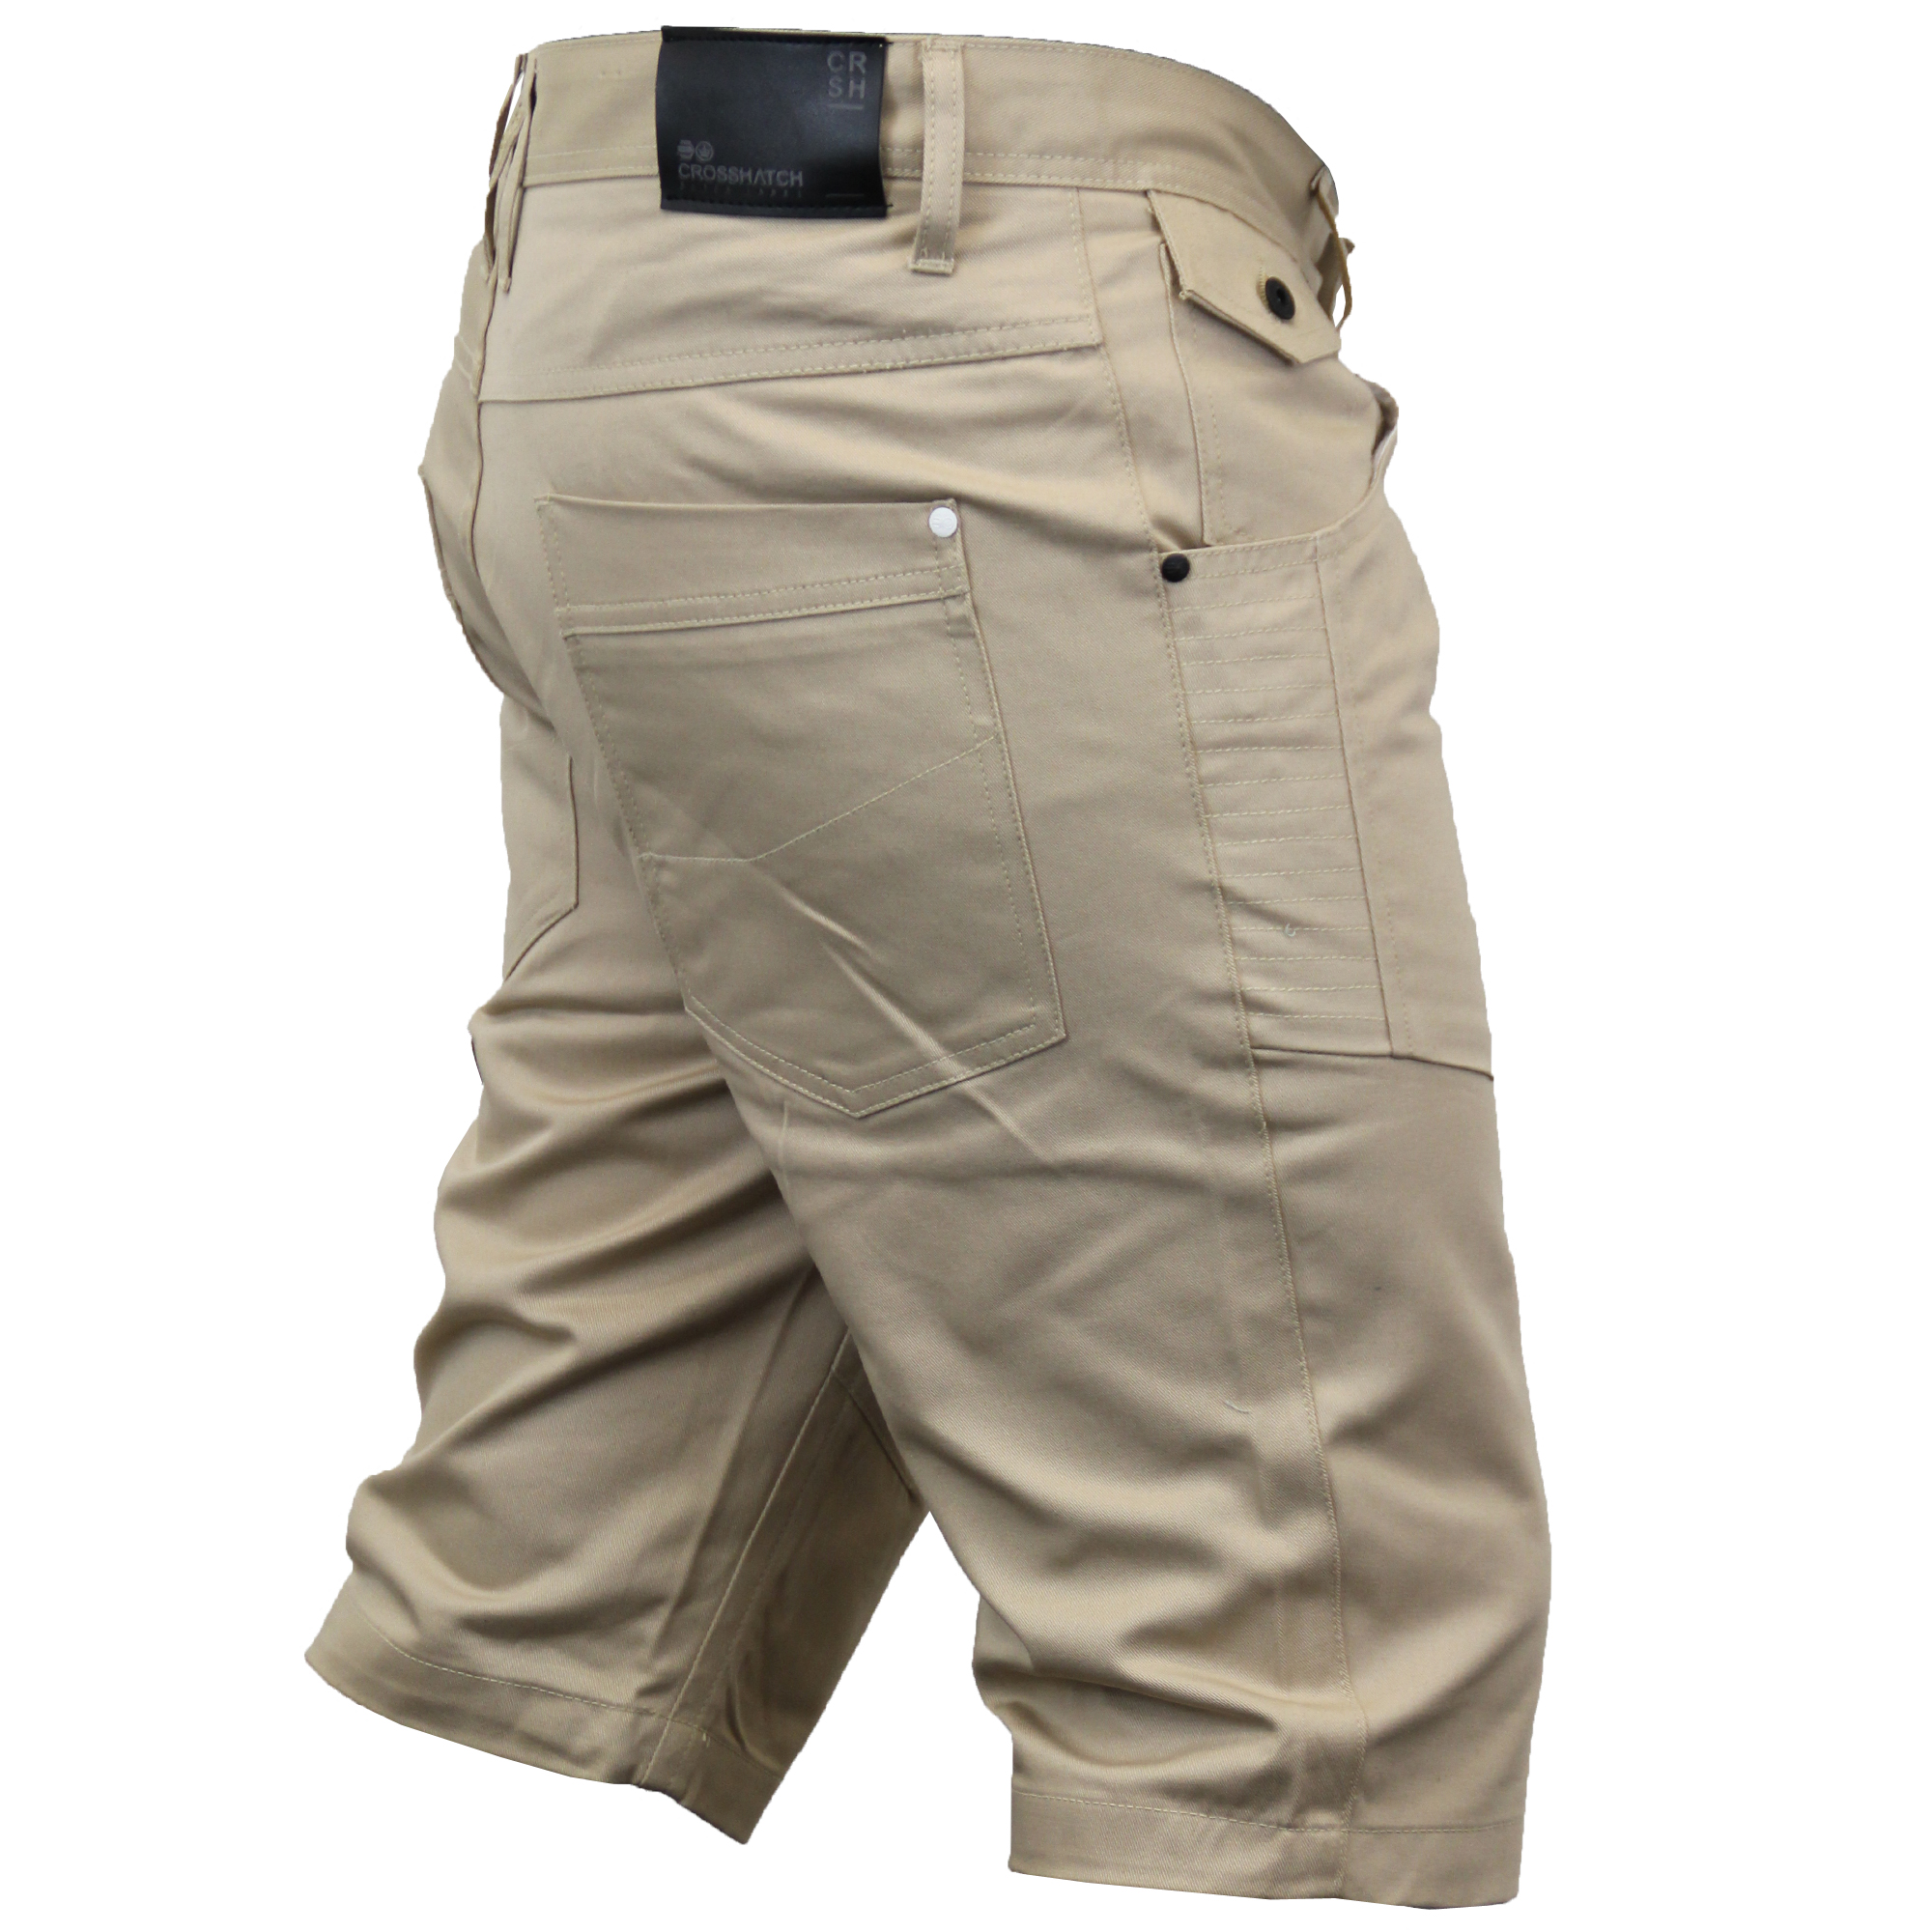 Mens Knee Length Chino Shorts By Crosshatch | eBay